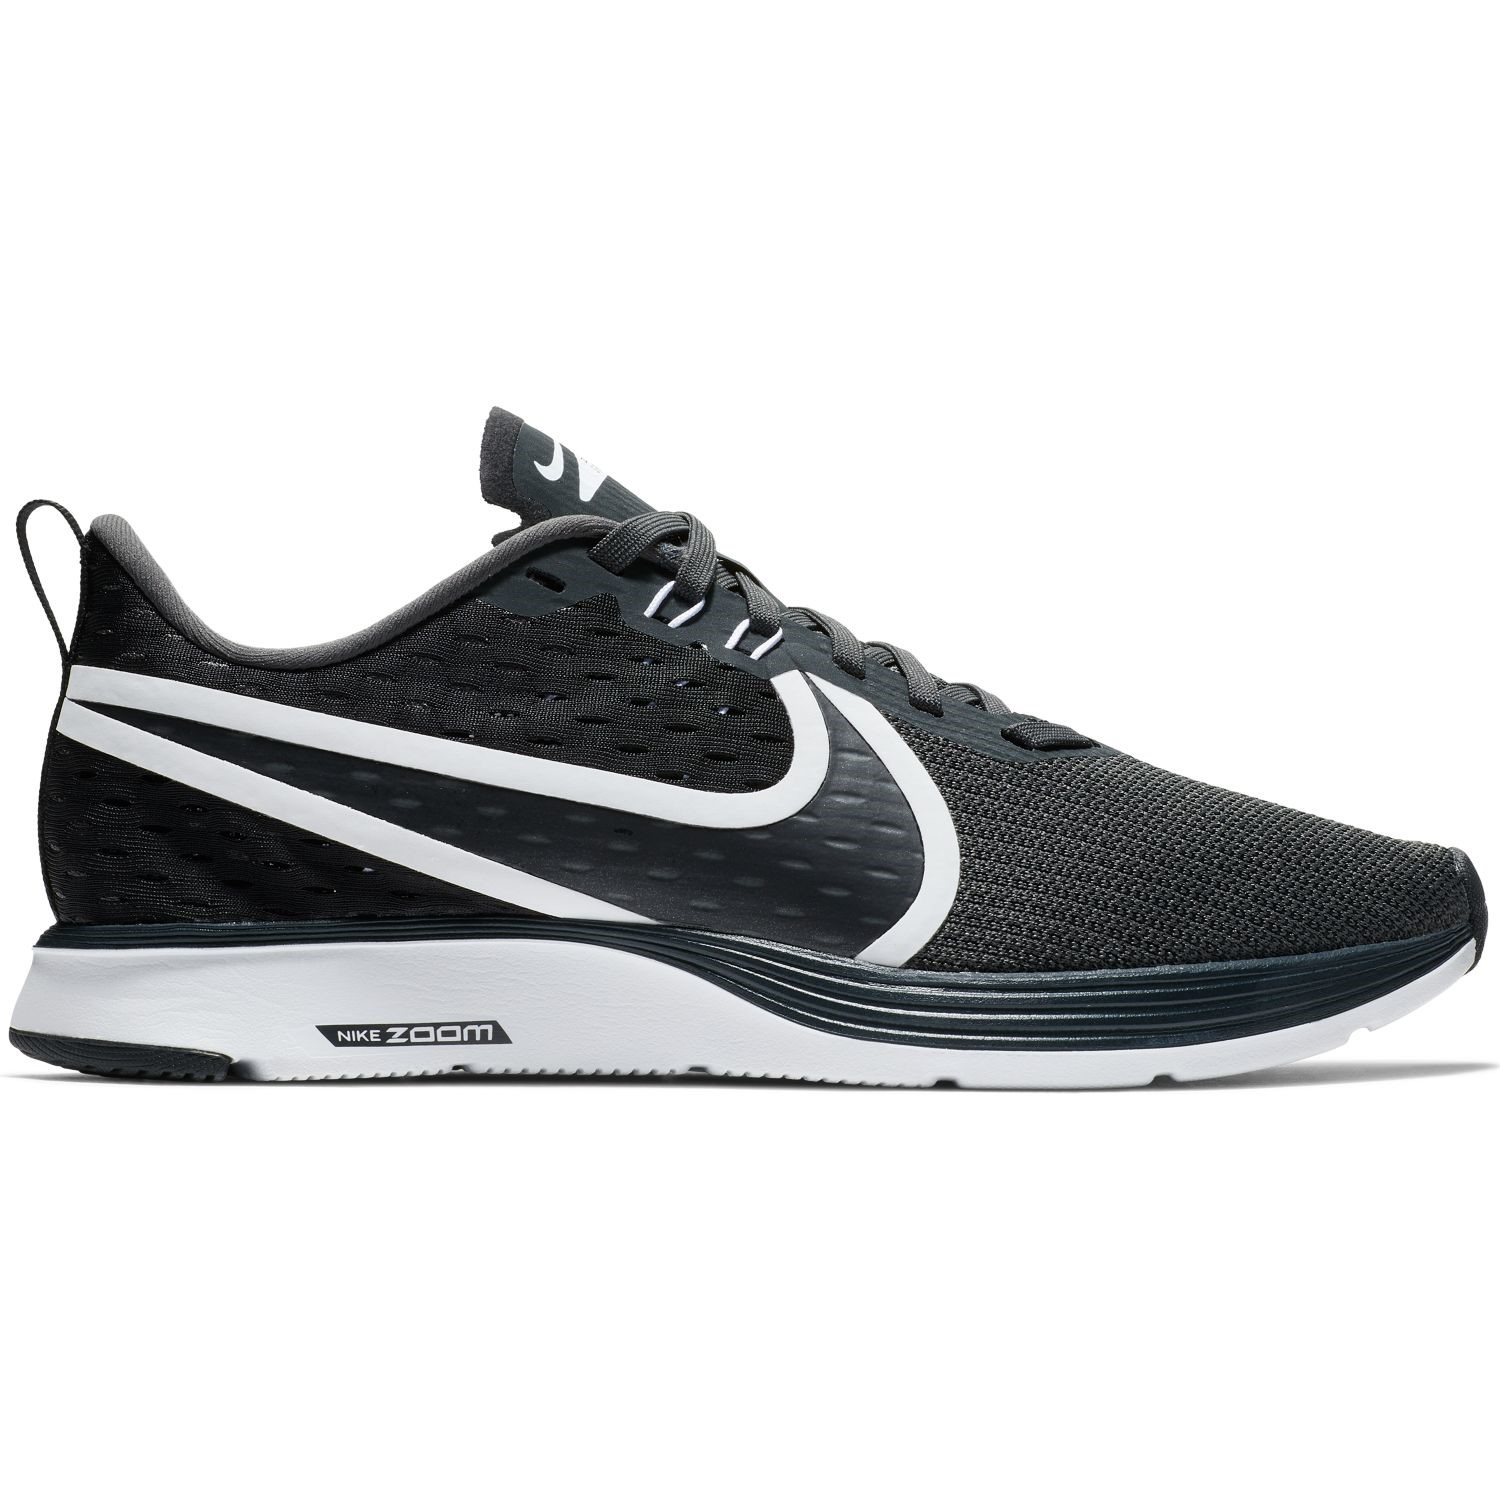 6135351574a2 Nike Zoom Strike 2 - Womens Running Shoes - Black Anthracite White ...